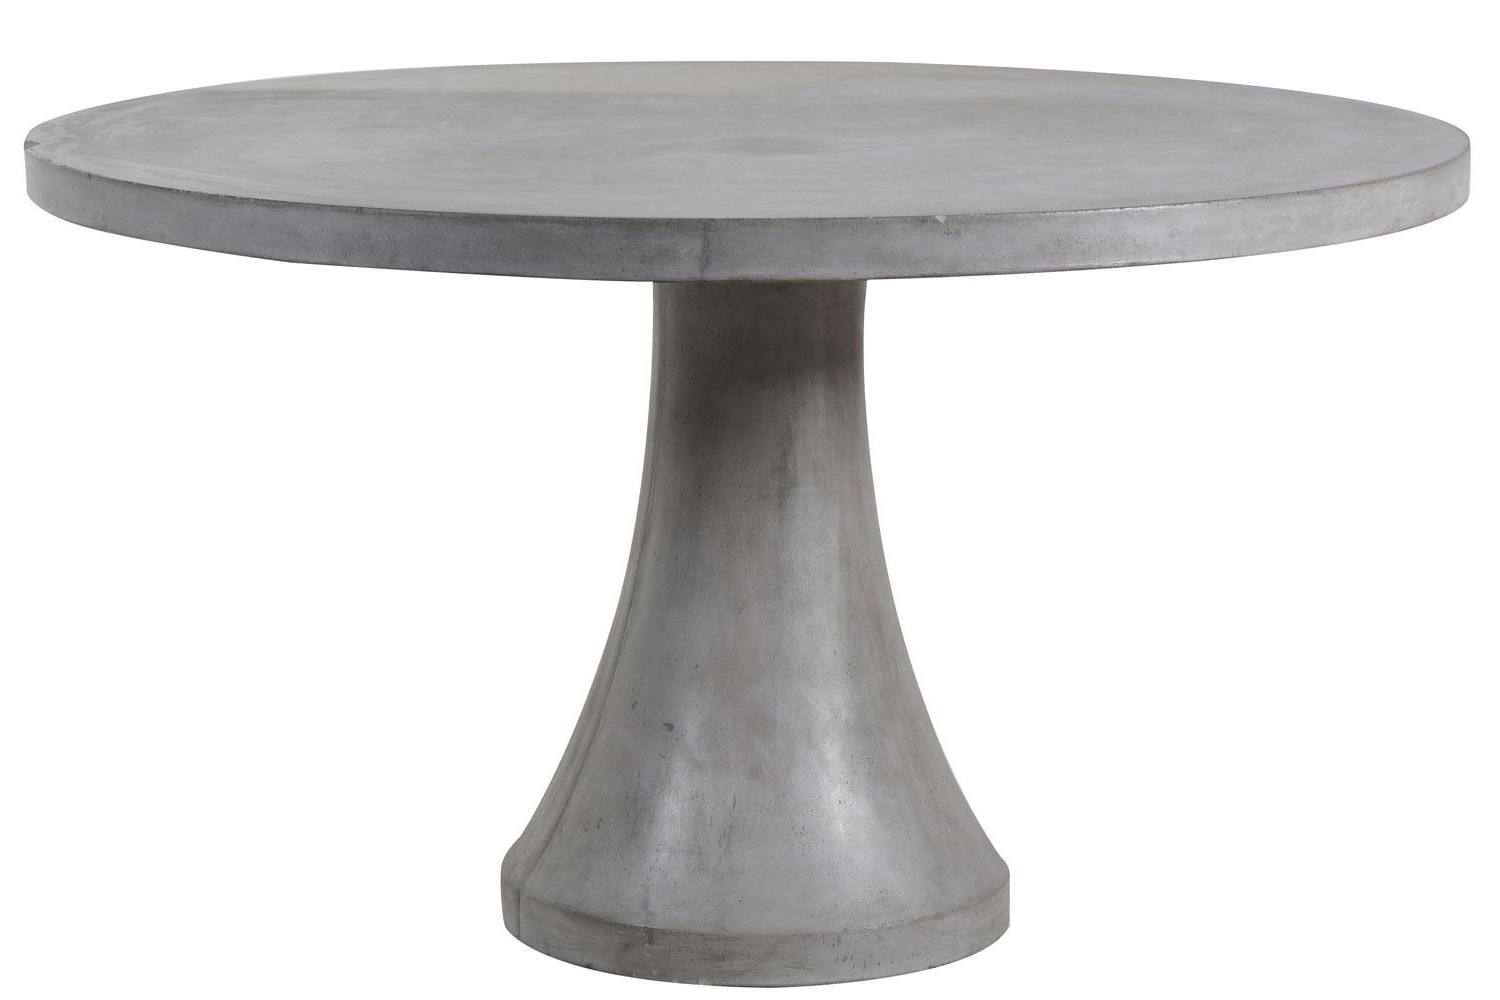 Aztec Round Pedestal Dining Tables With Fashionable Best Dining Tables: The Best Stylish Dining Room Tables  (View 5 of 25)